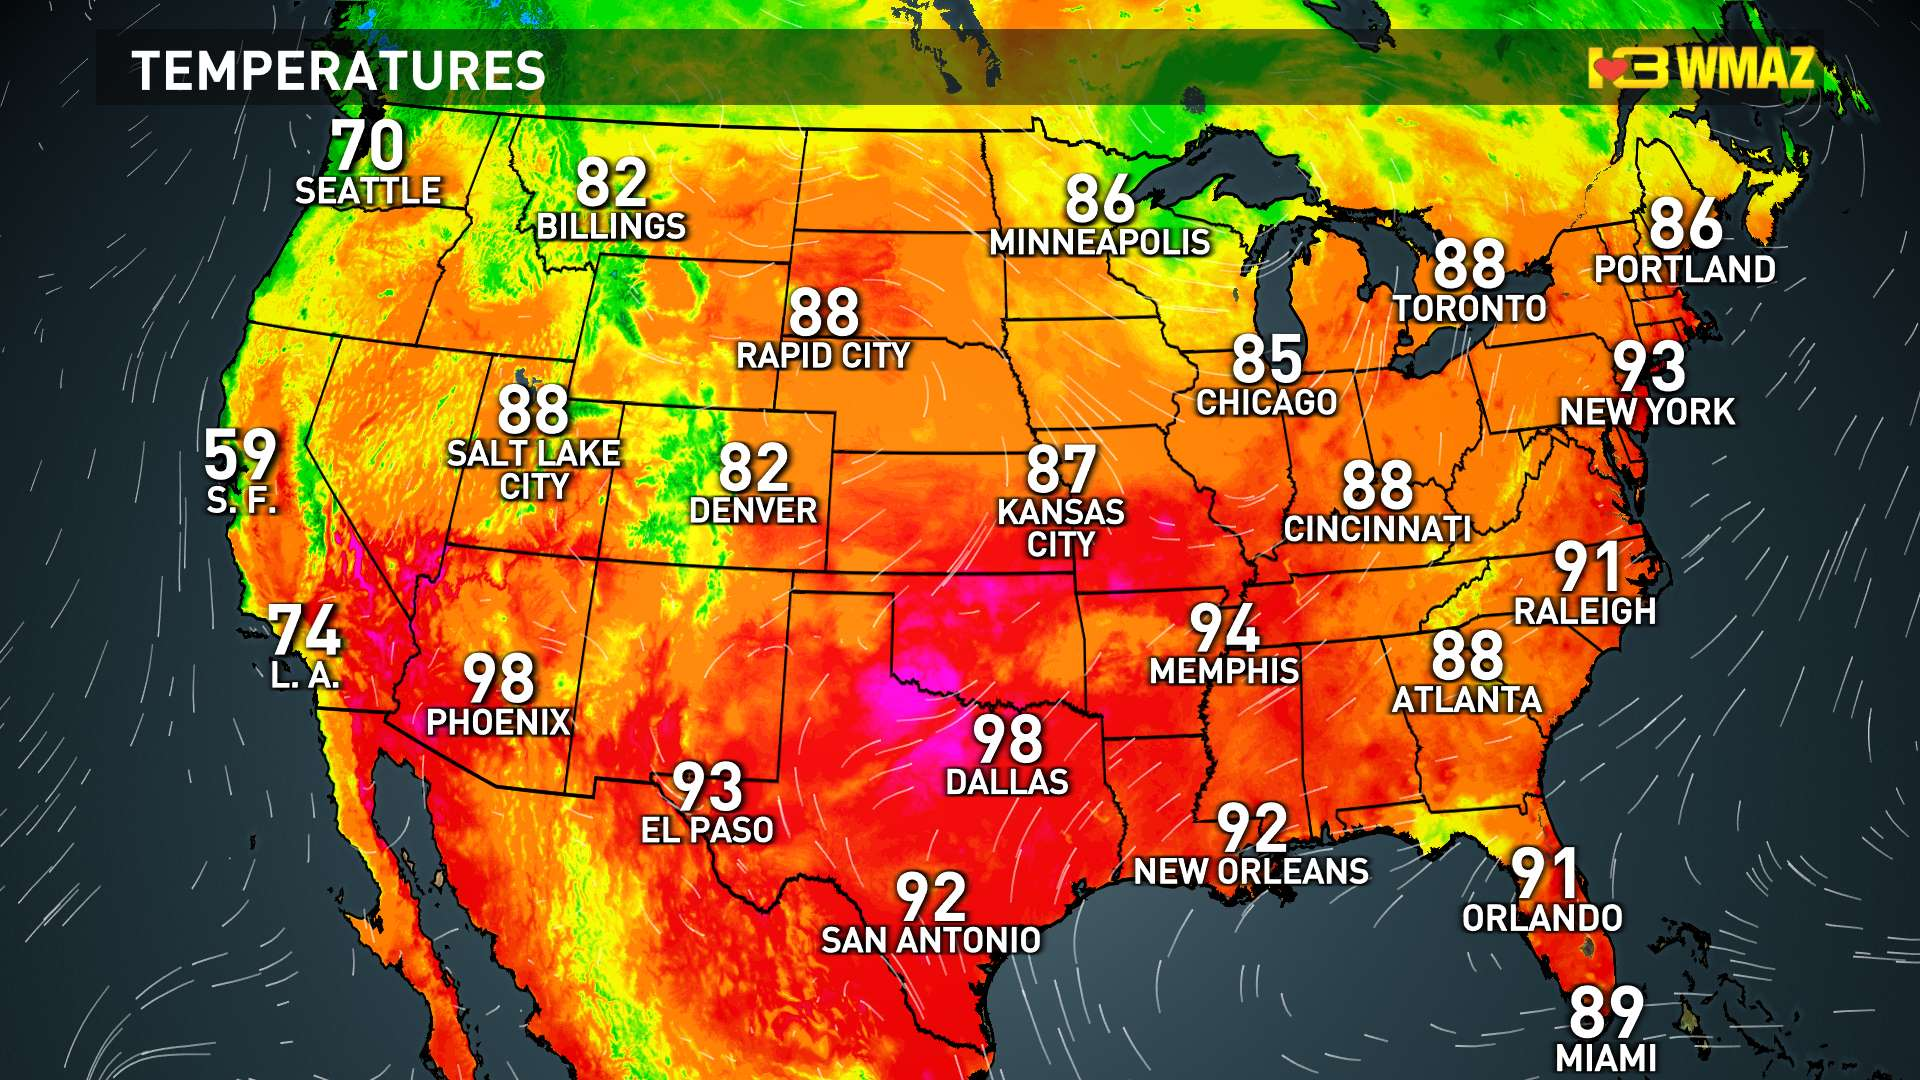 Current U.S. Temps